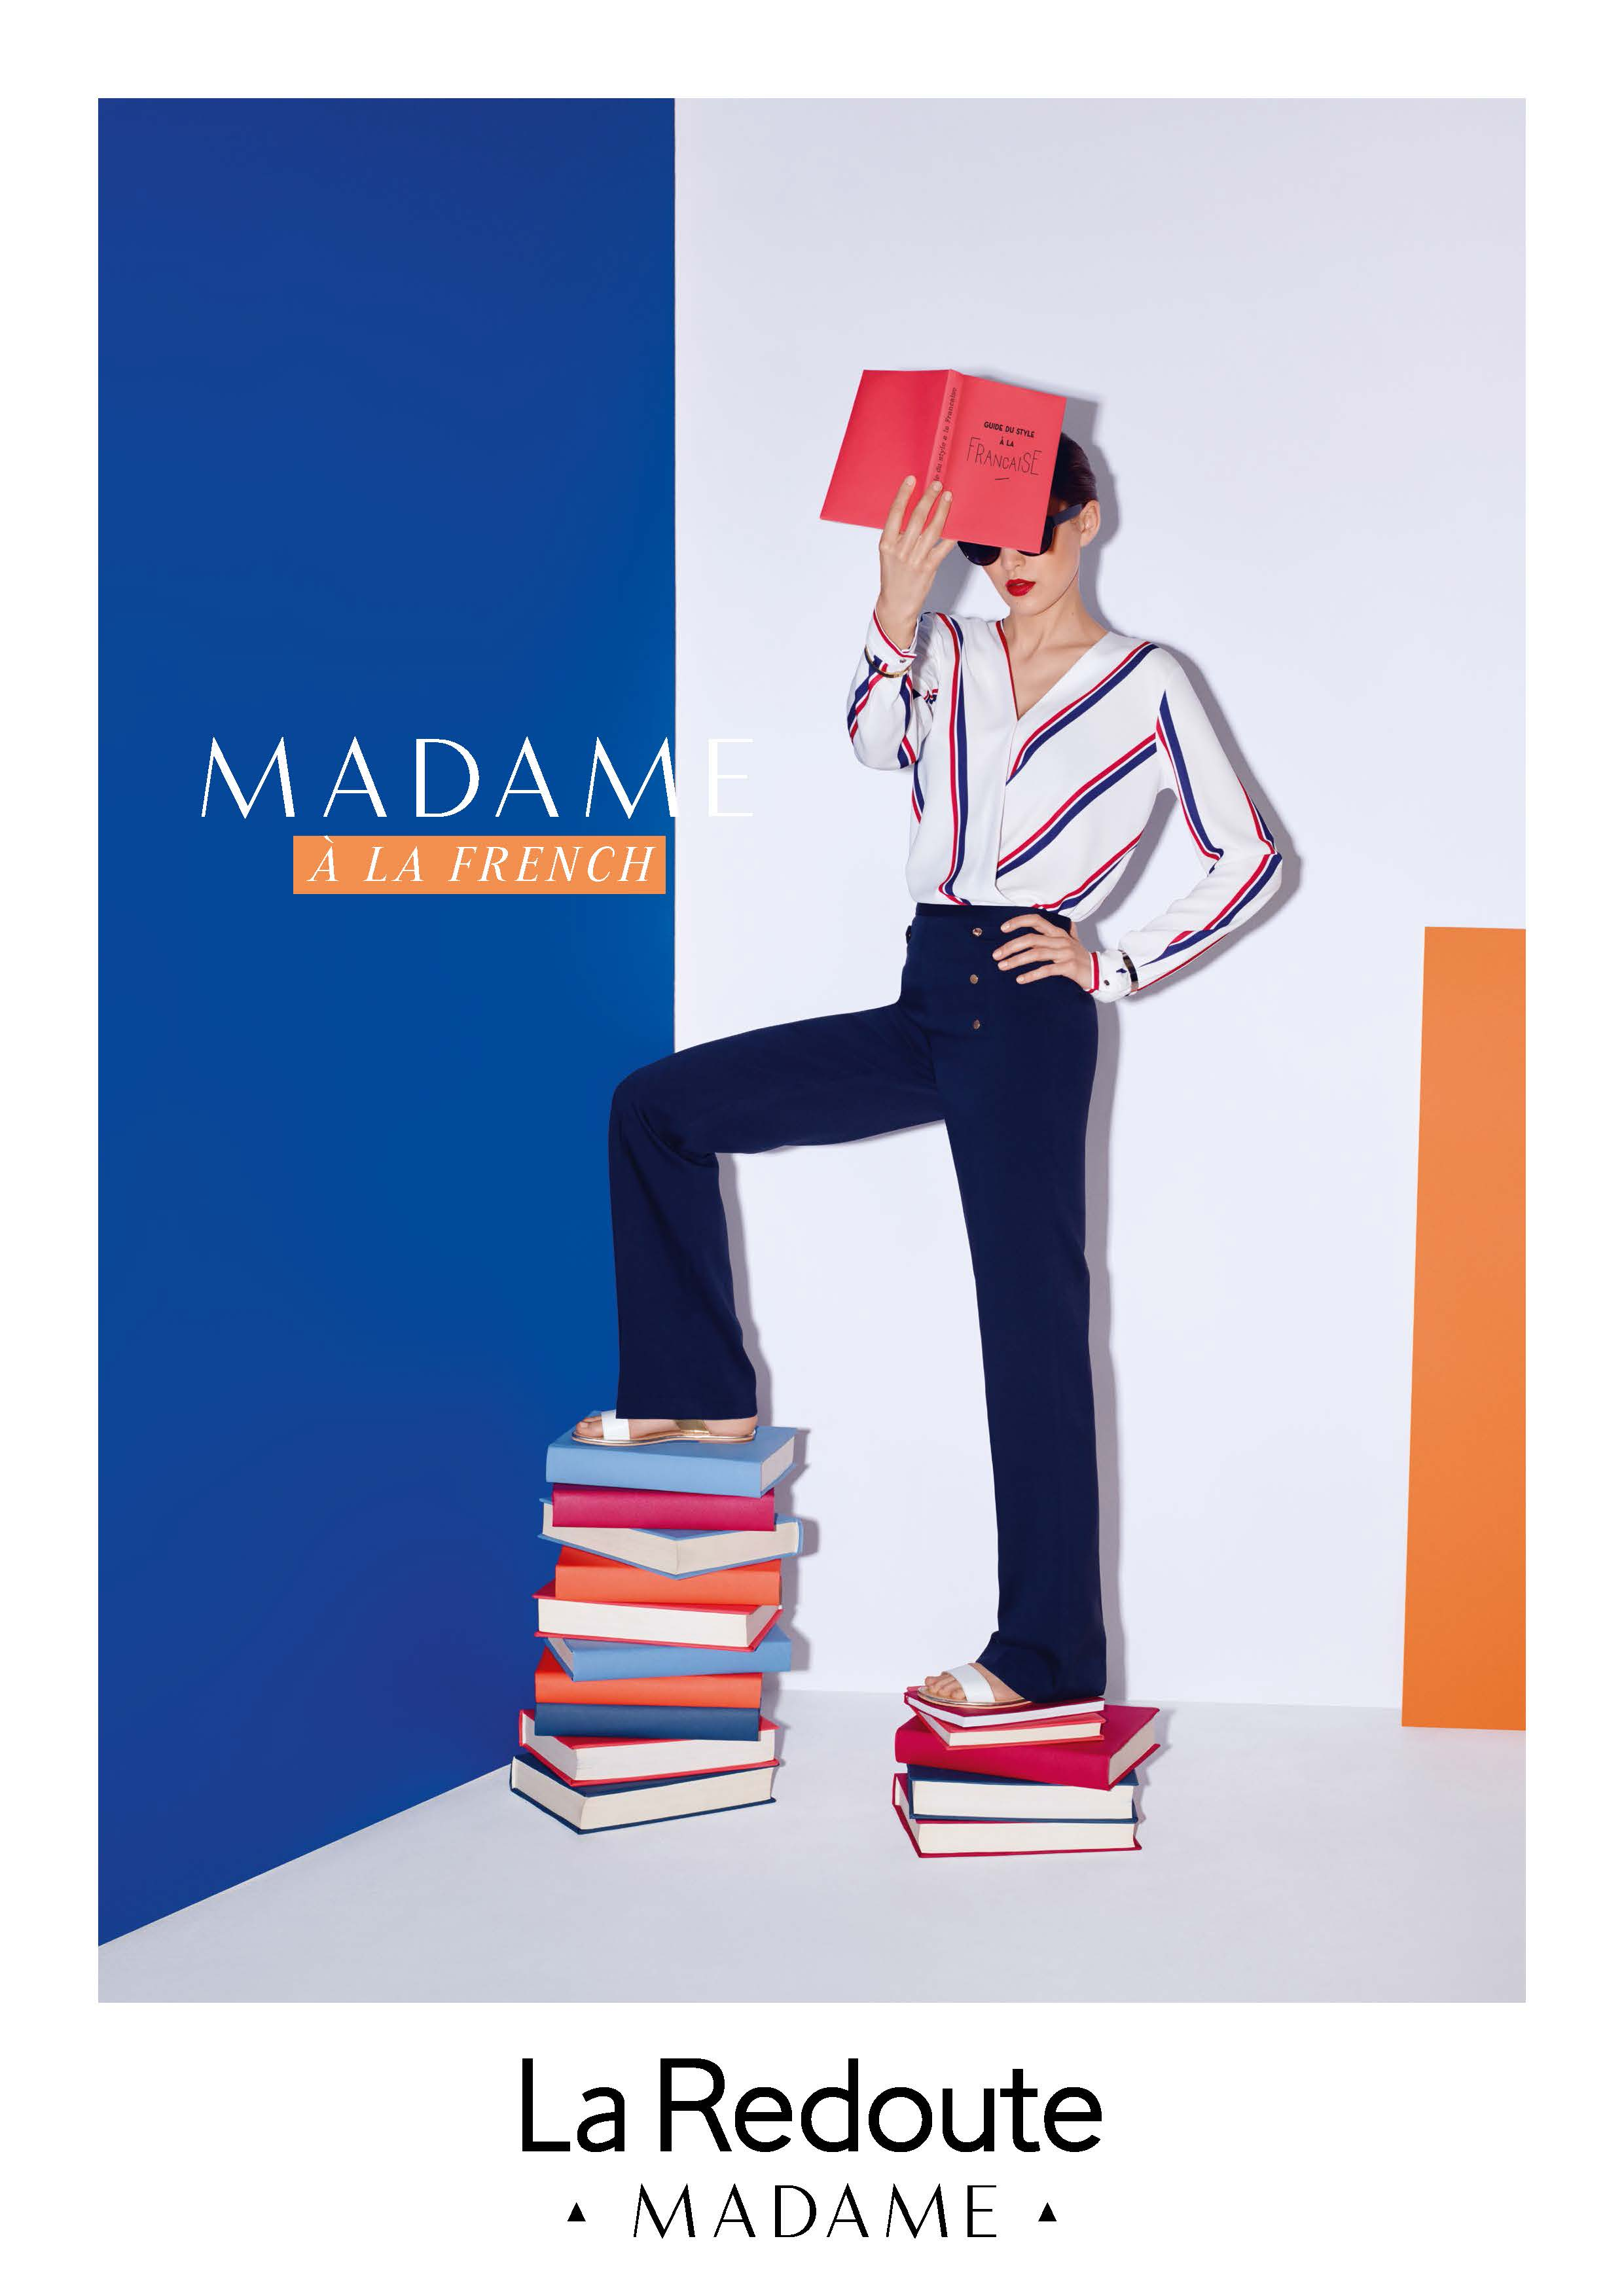 la-redoute-madame-2016-publicite-marketing-marque-mode-femme-france-agence-fred-farid-7